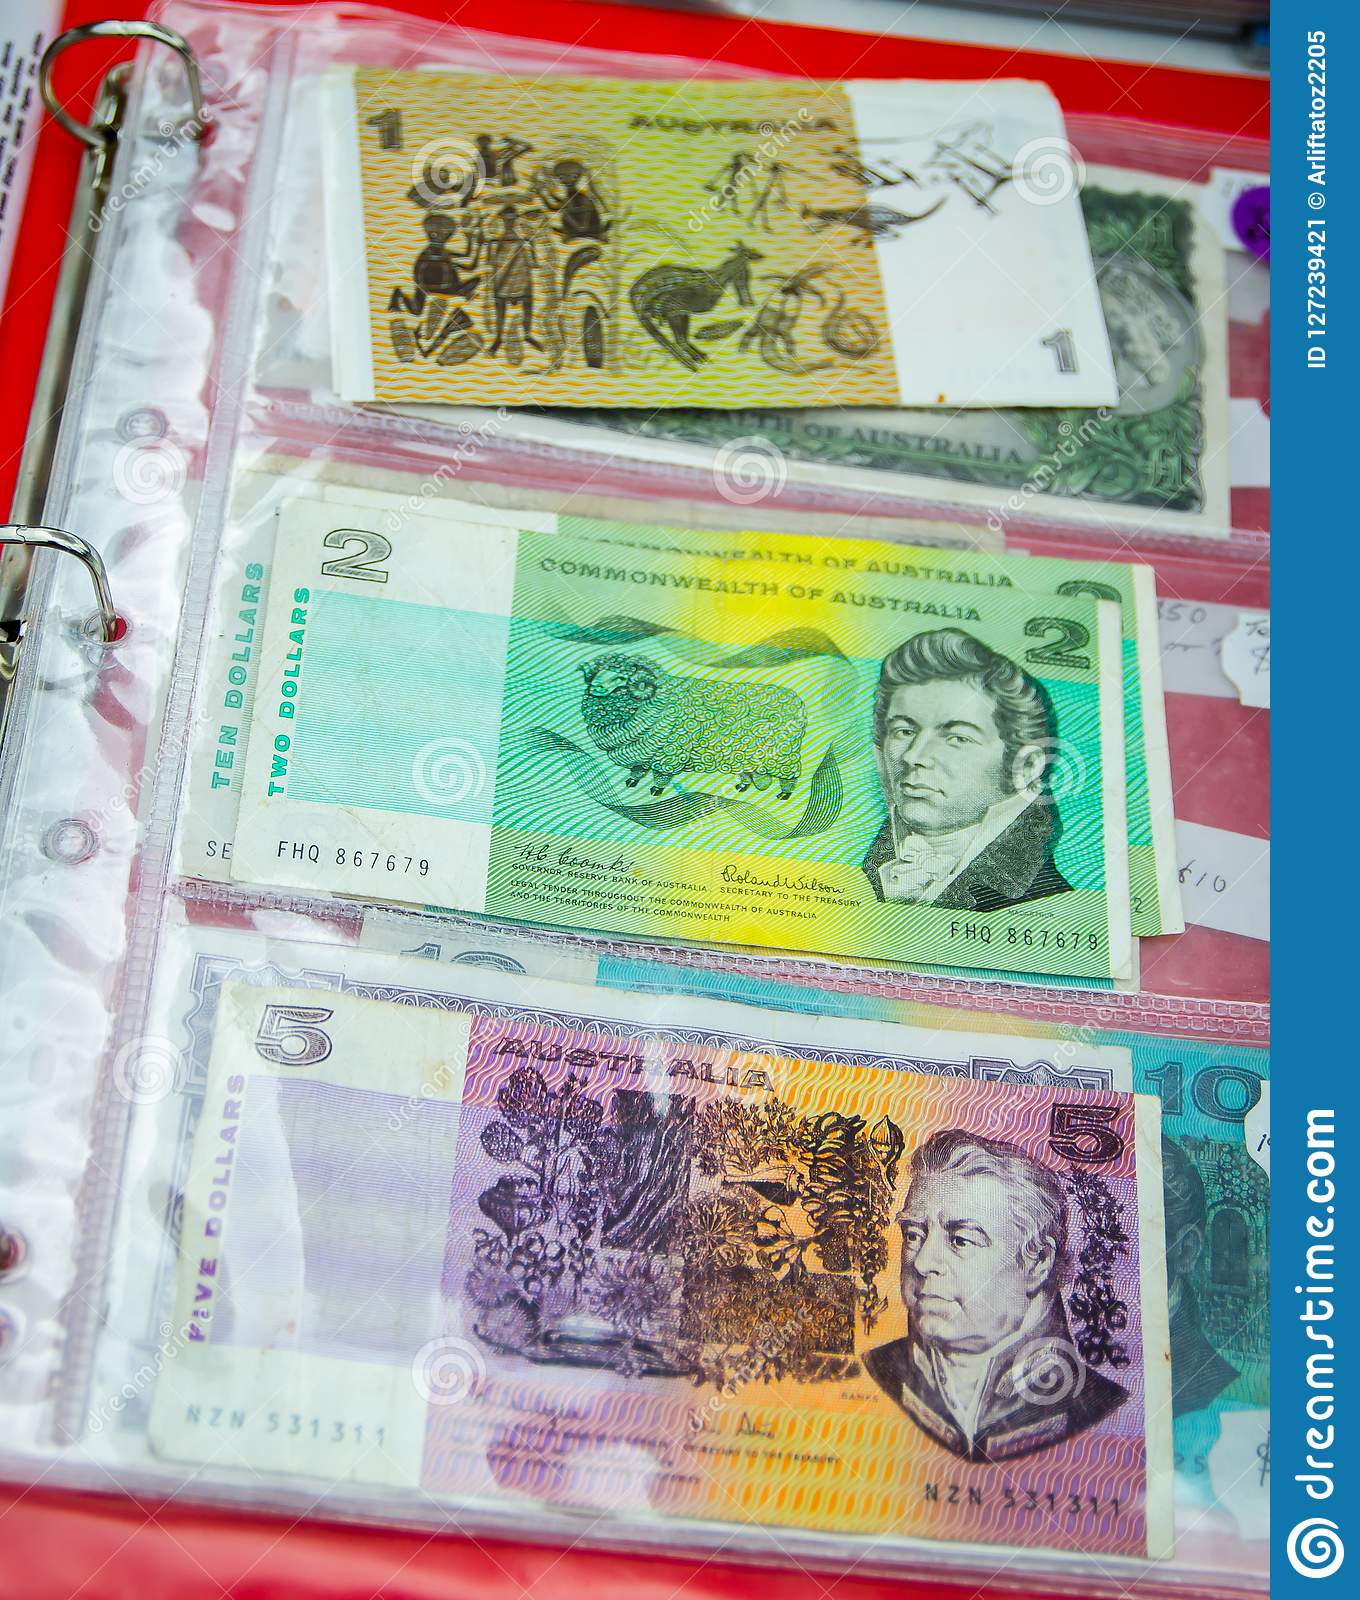 The Old Version Of Australian Banknotes In Value Of 1 , 2